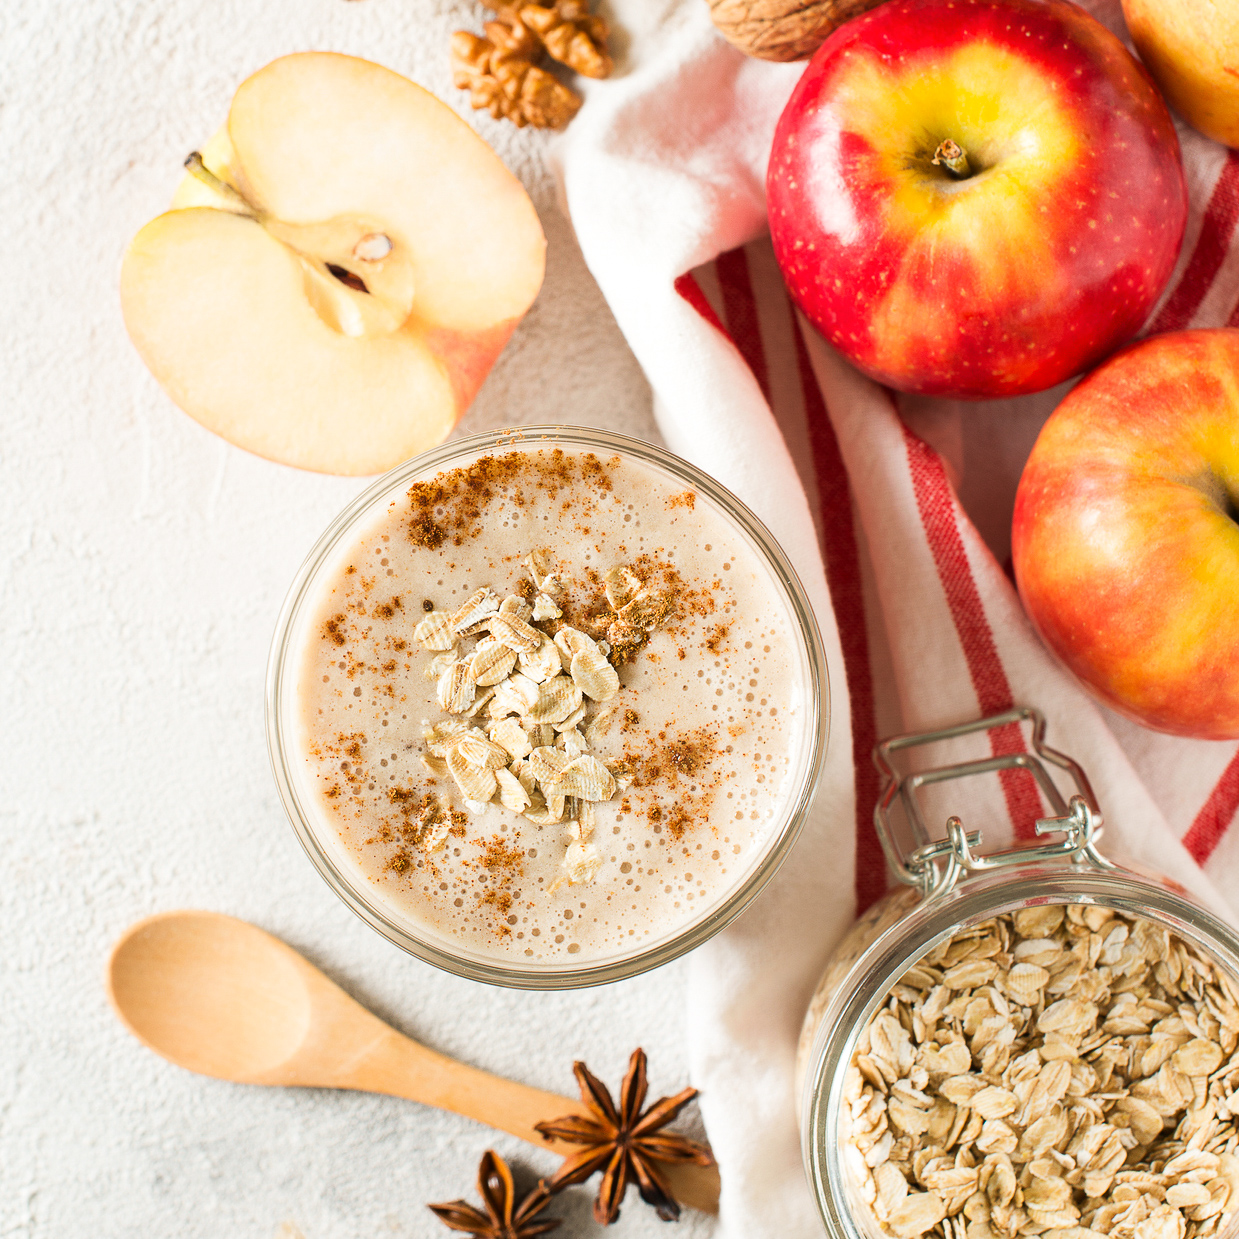 Apple & Oats Smoothie